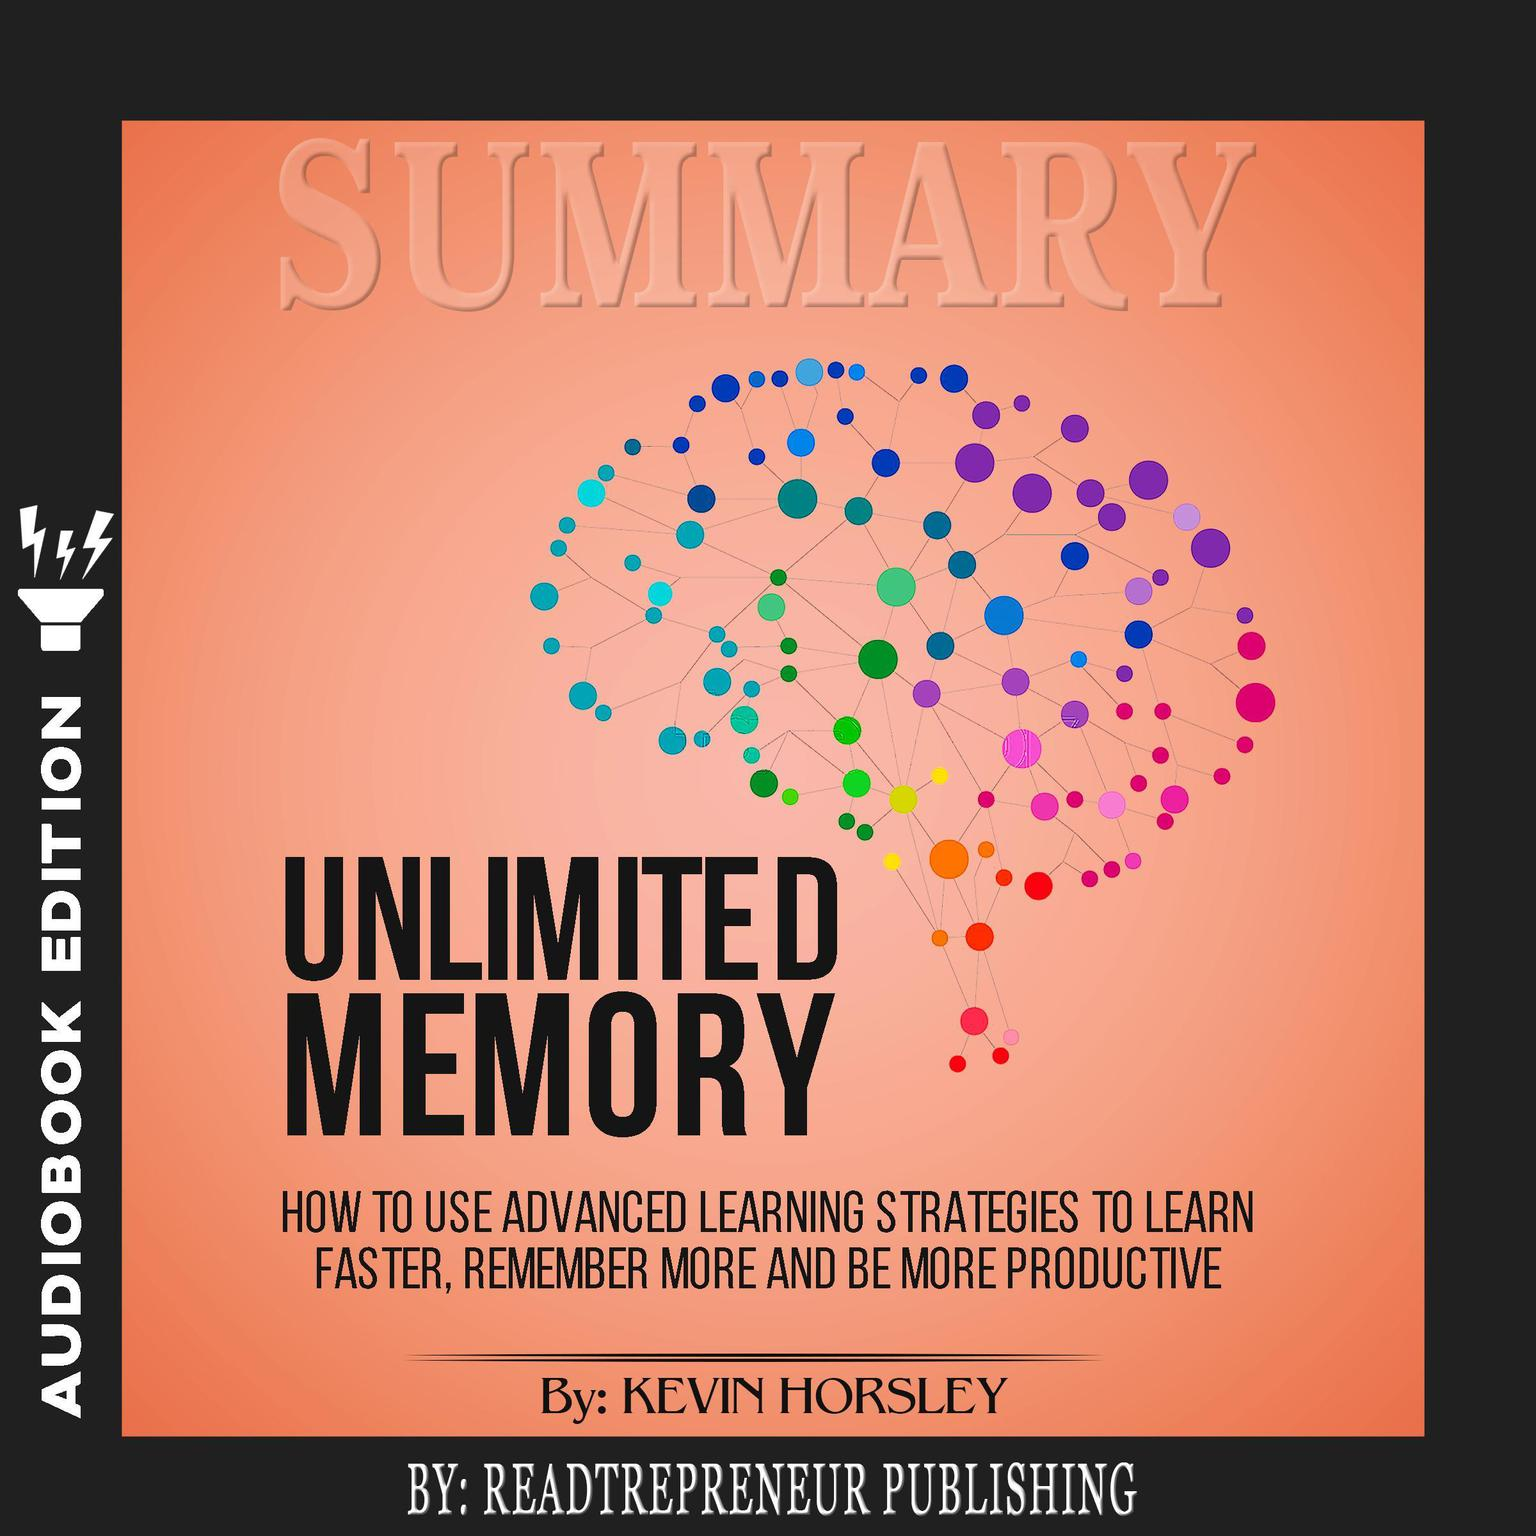 Printable Summary of Unlimited Memory: How to Use Advanced Learning Strategies to Learn Faster, Remember More and be More Productive by Kevin Horsley Audiobook Cover Art